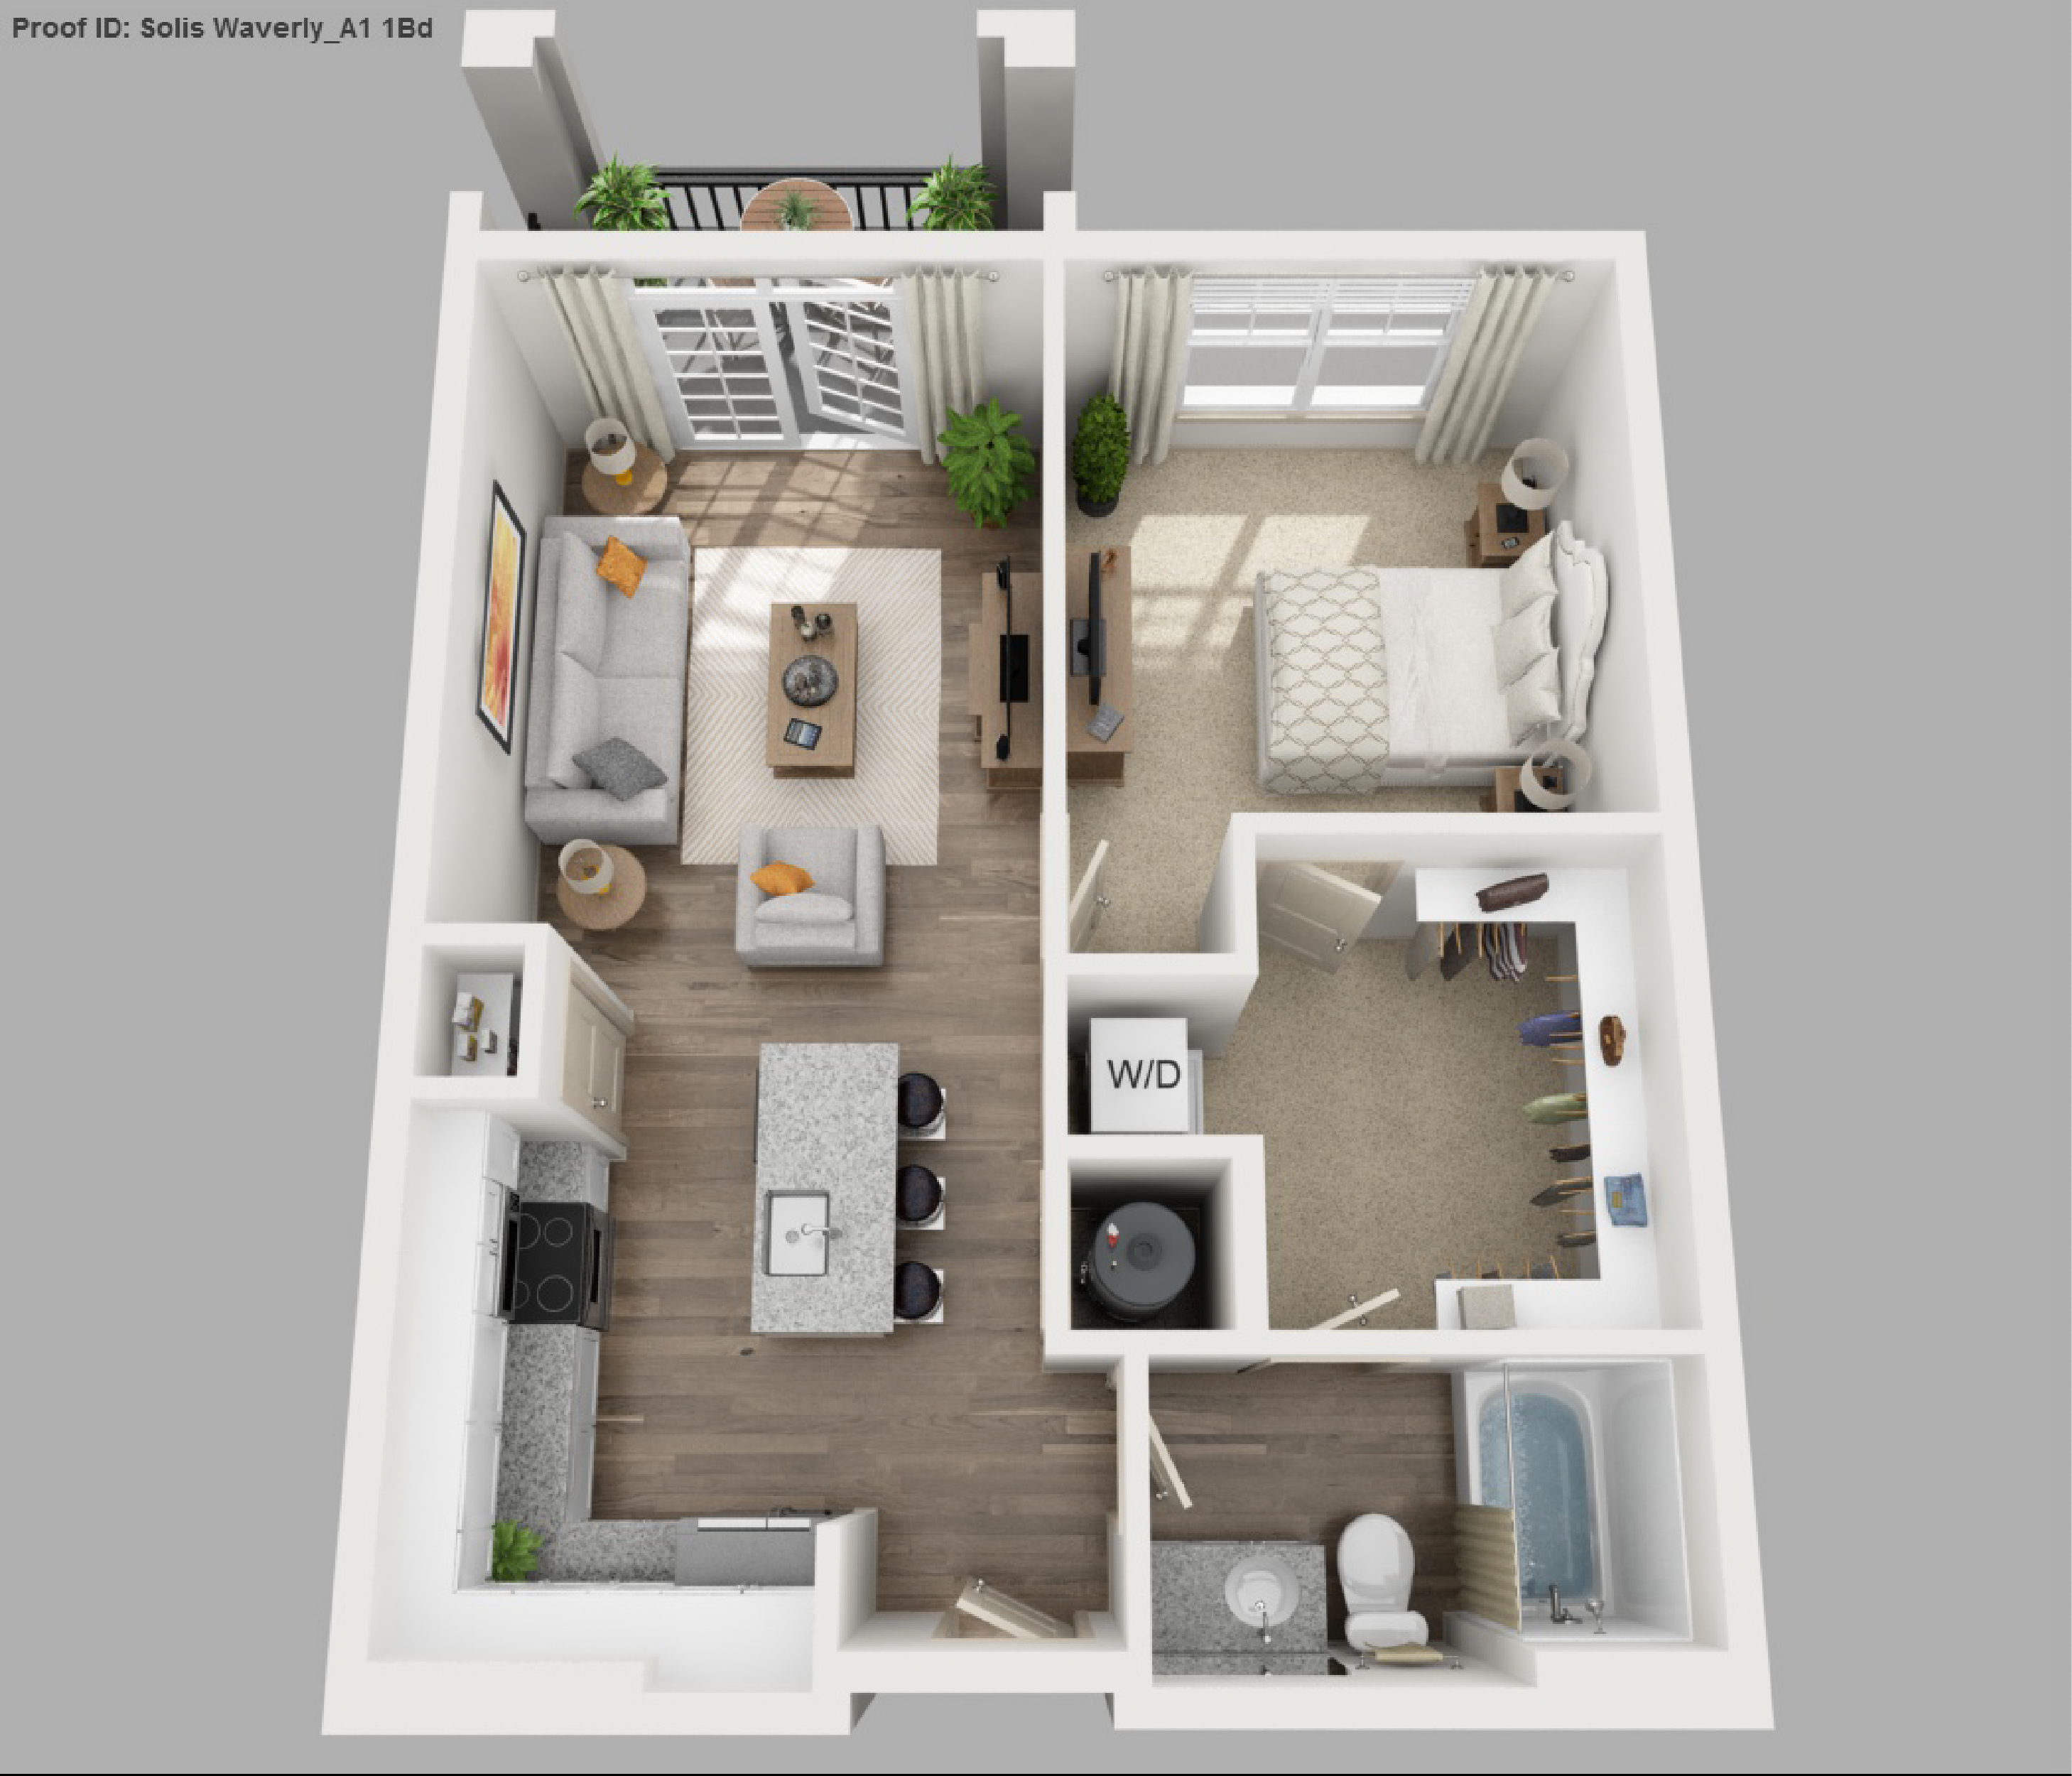 Image Result For 1 Bedroom 3d Floor Plan Small Apartment Floor Plans Studio Floor Plans Studio Apartment Floor Plans